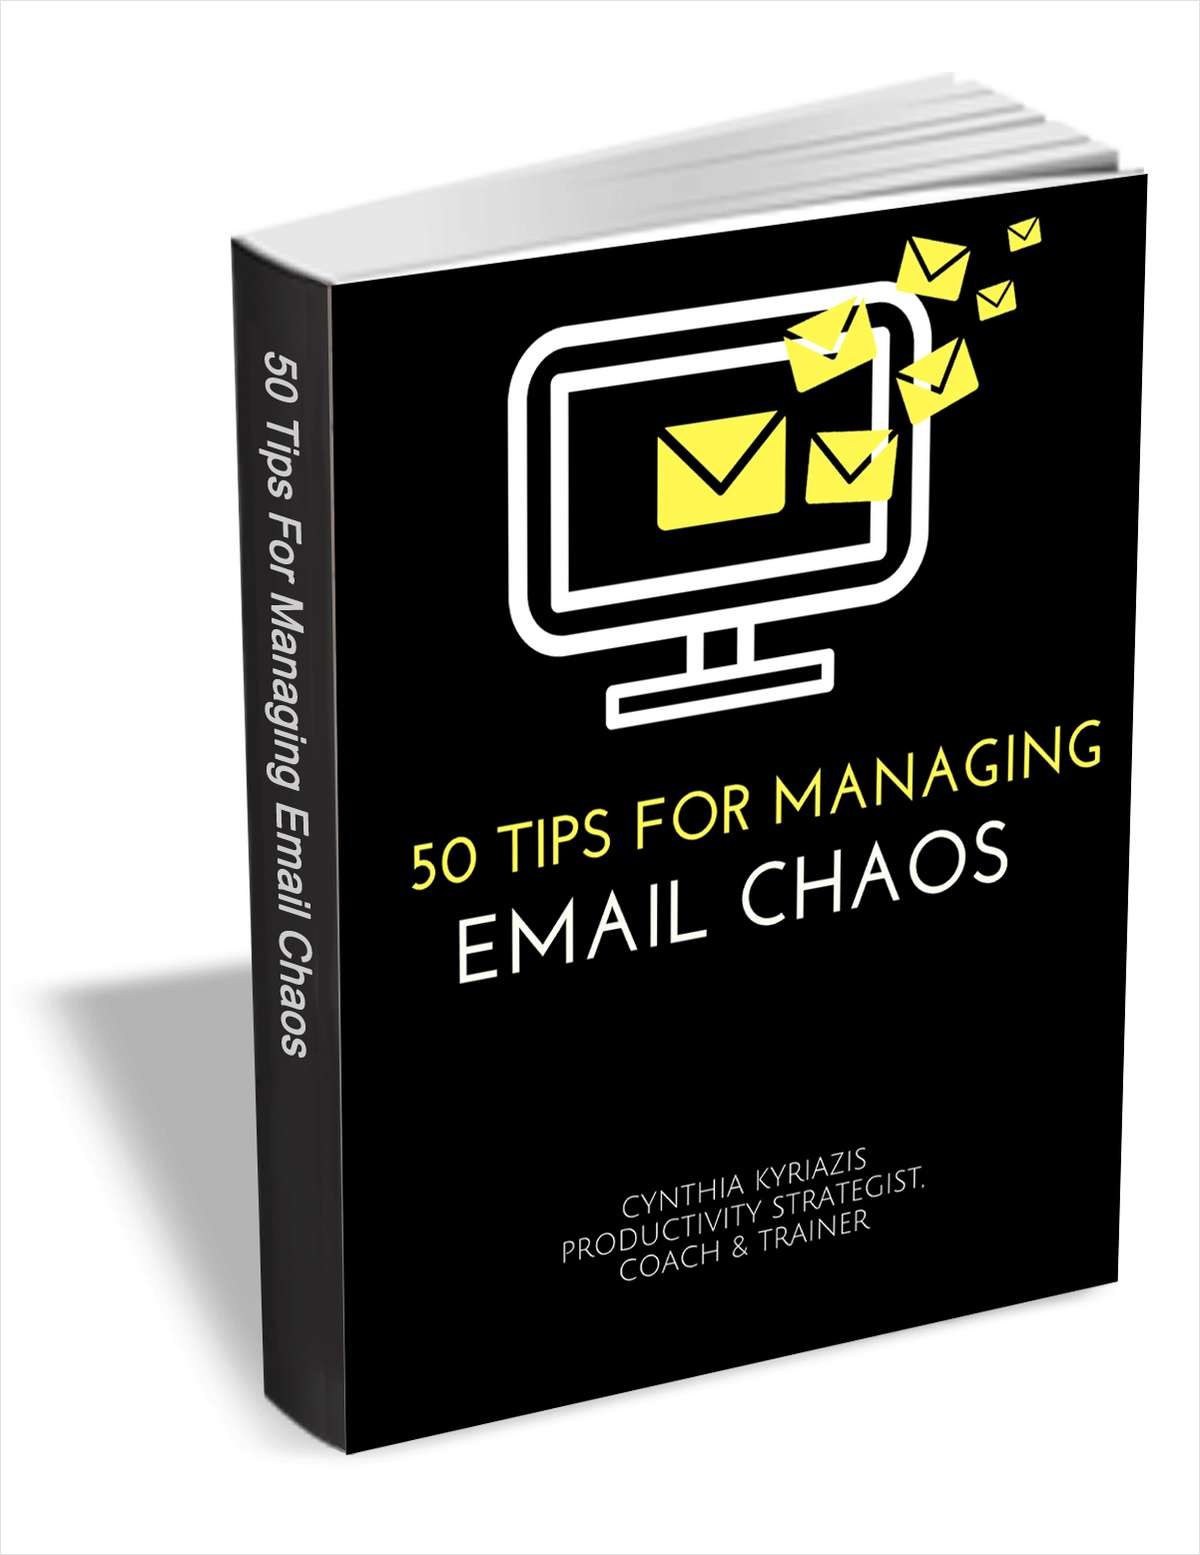 50 Tips for Managing Email Chaos